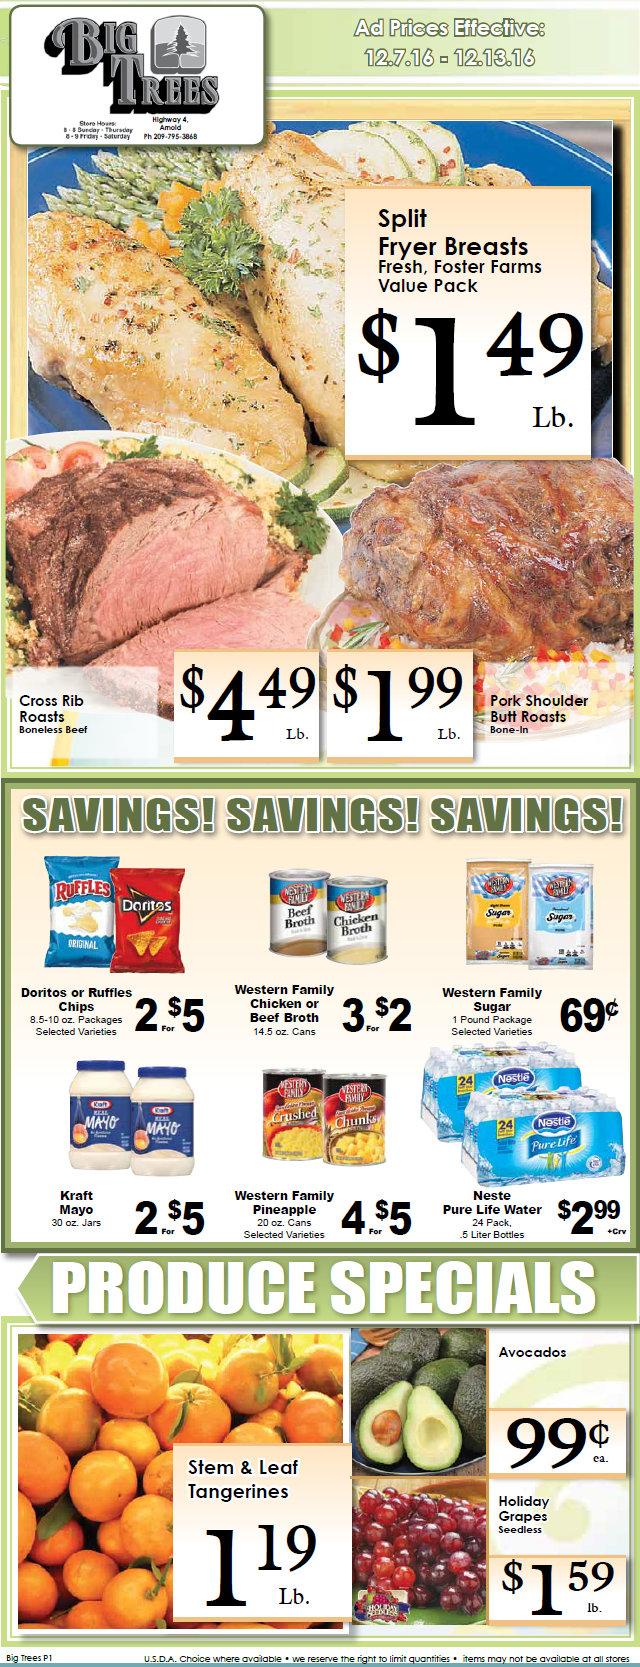 Big Trees Market Weekly Ad & Specials Through December 13th